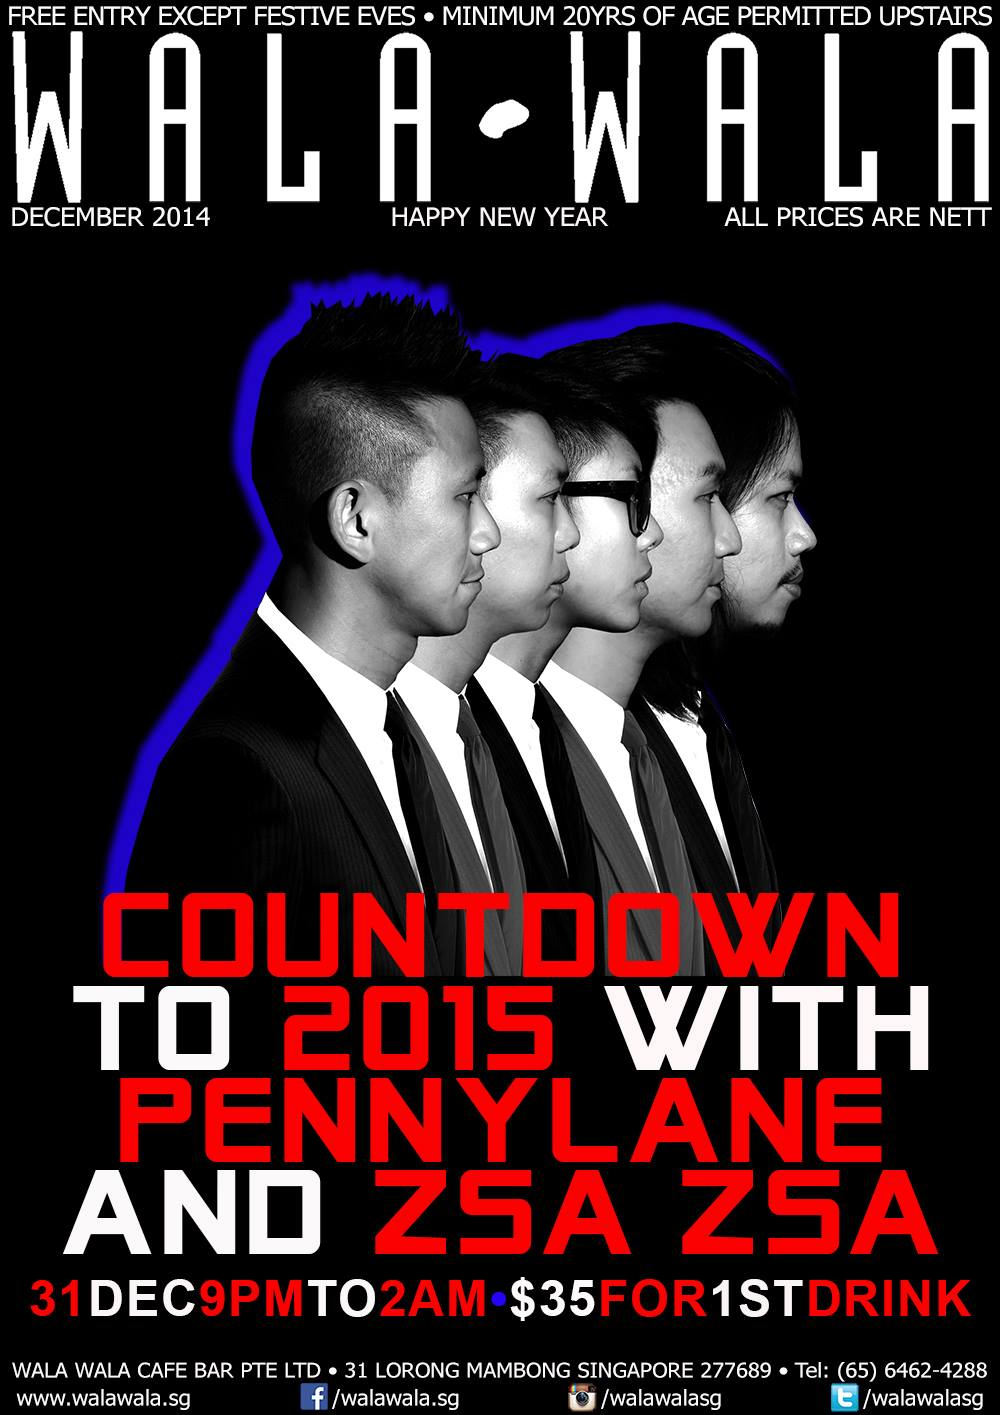 Countdown to 2015 with Pennylane and Zsa Zsa